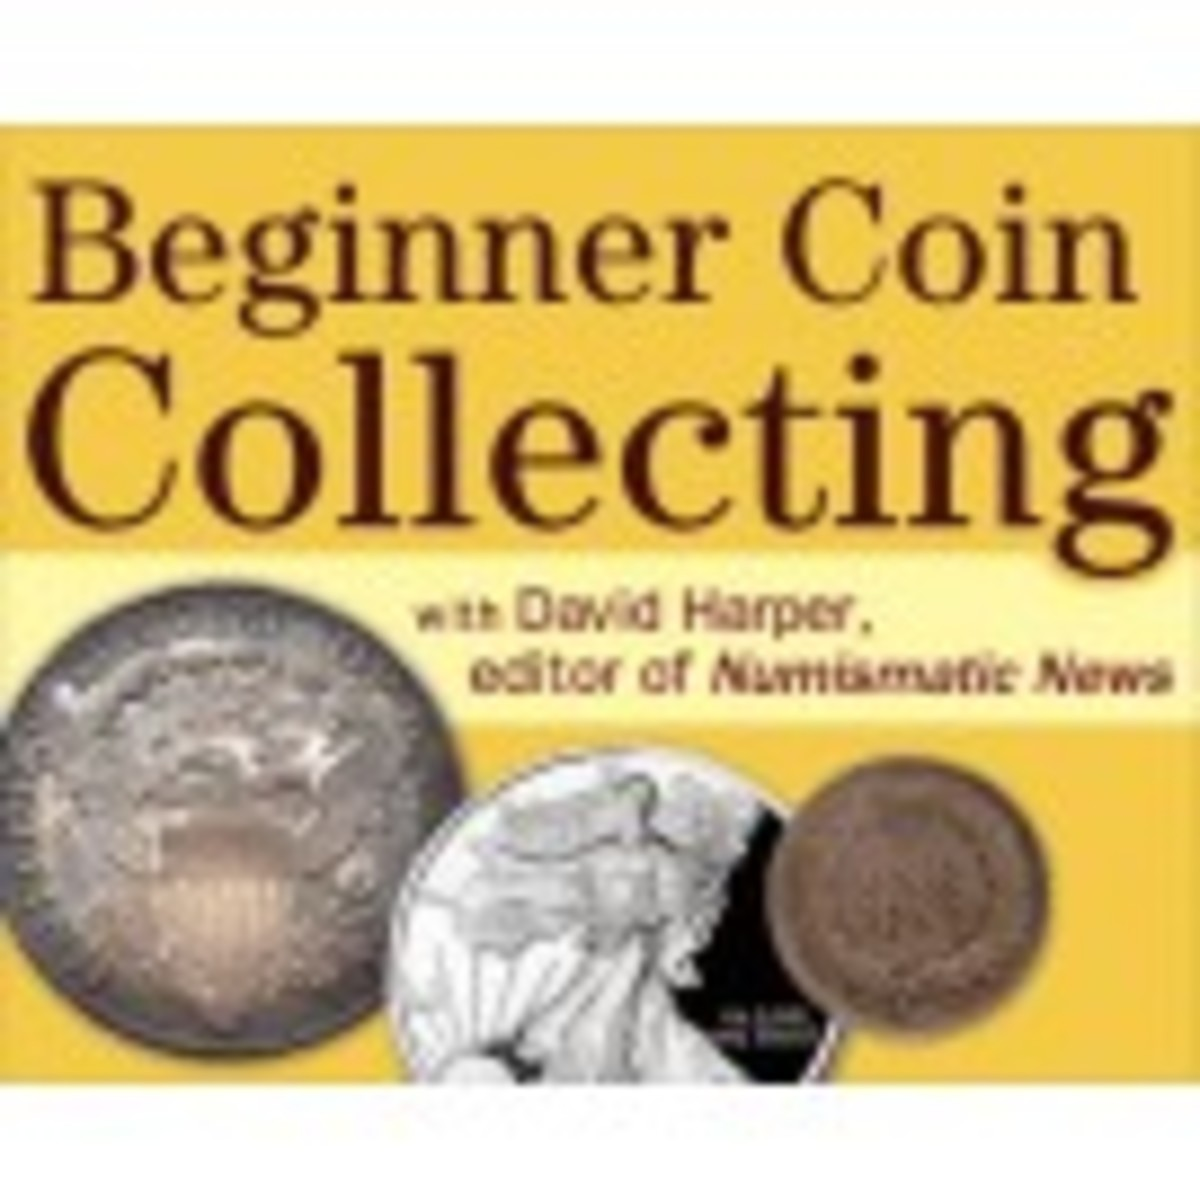 Beginner Coin Collecting Online Seminar